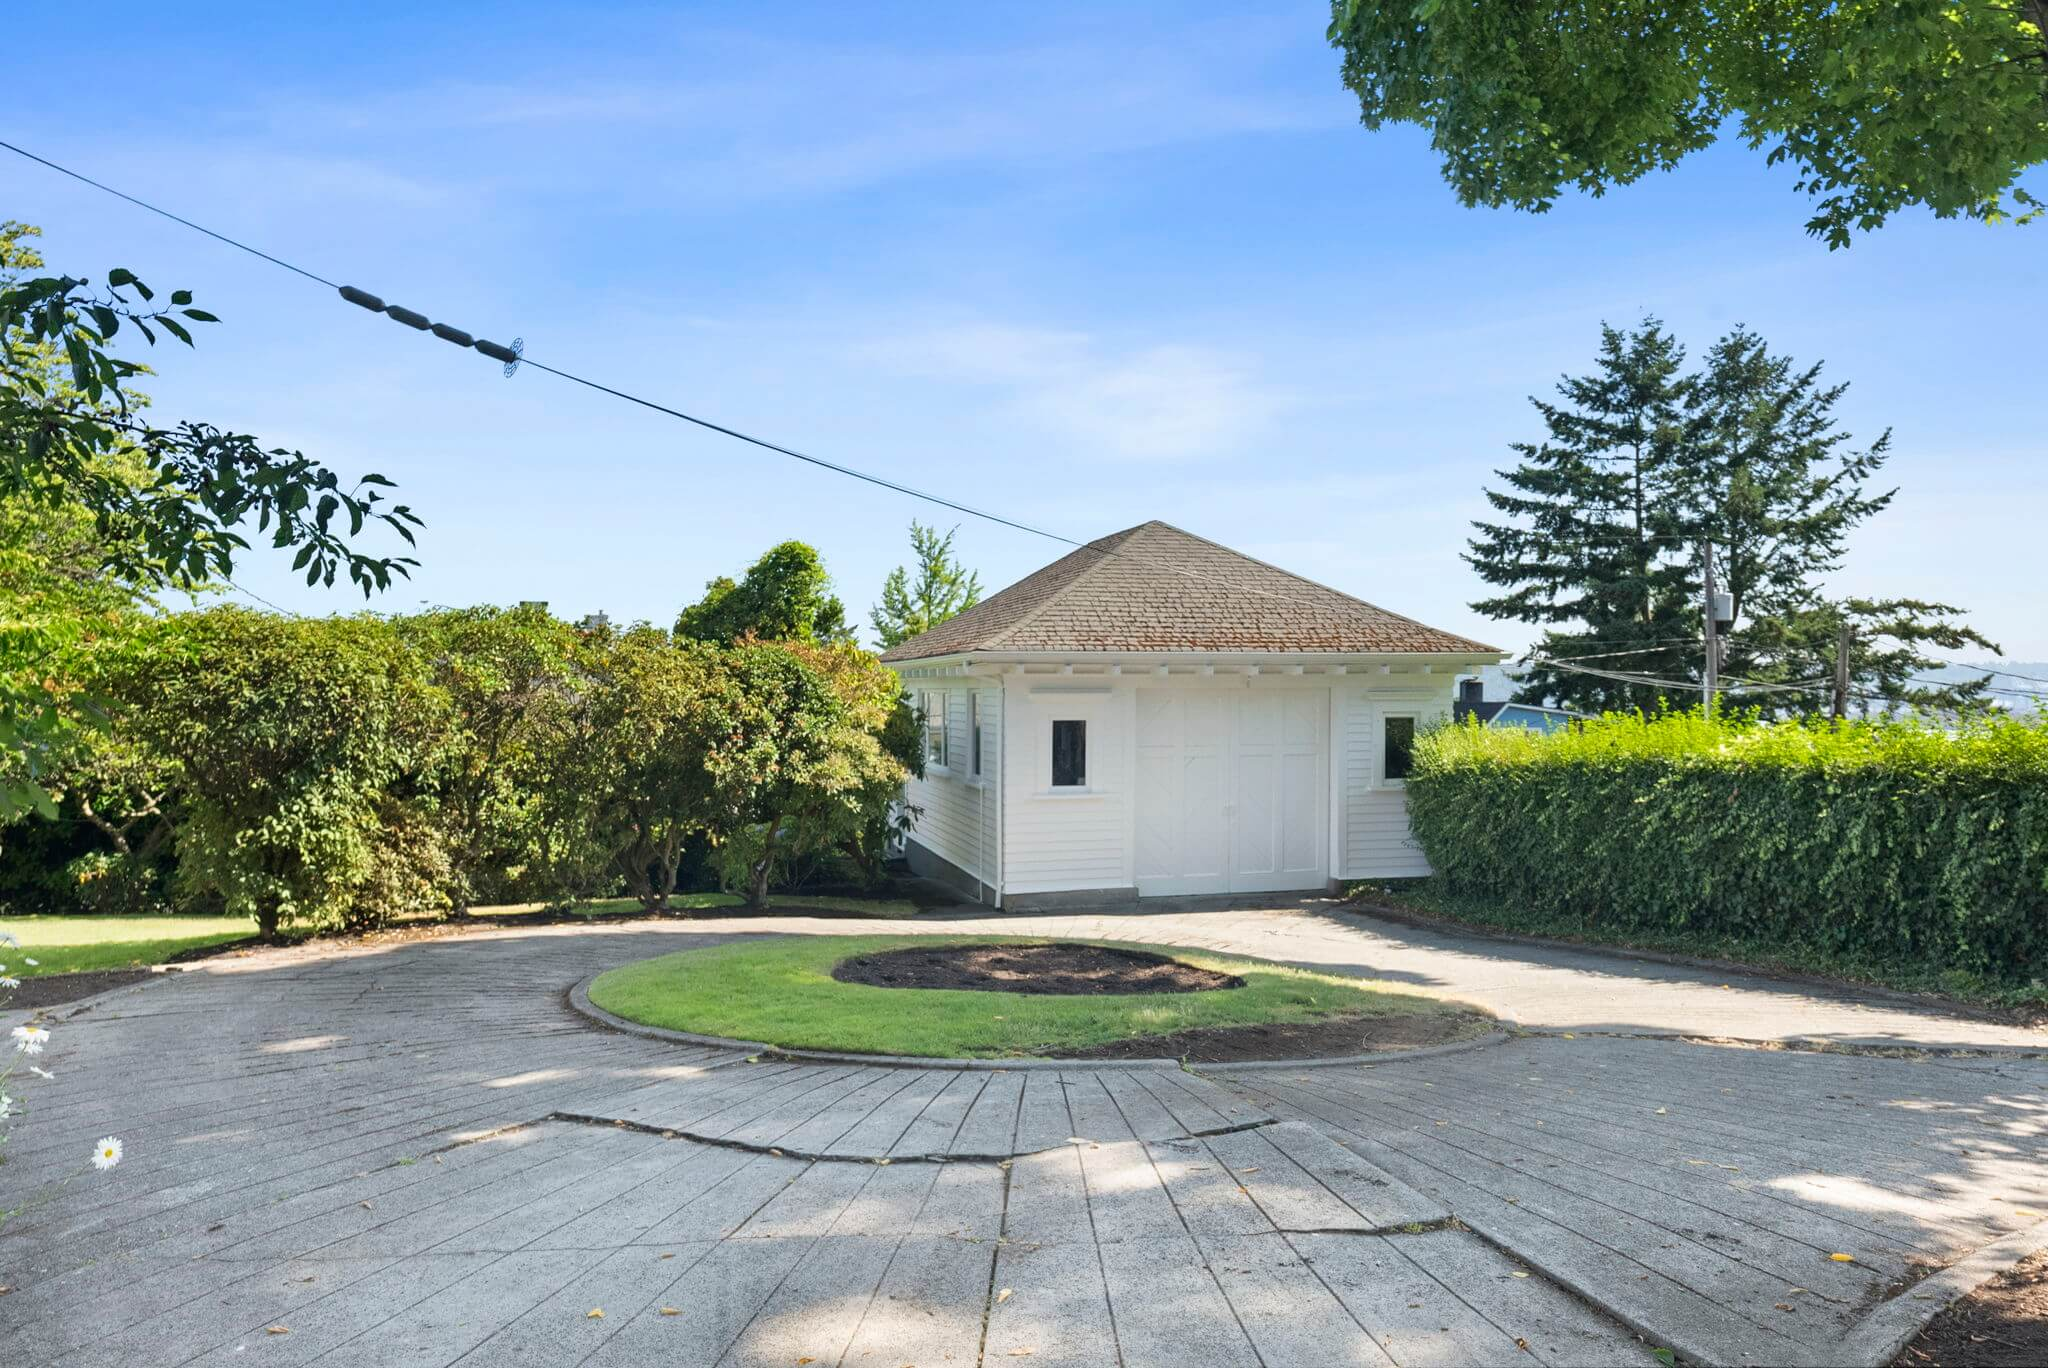 Circular driveway beyond the porte-cochere leads to a detached garage